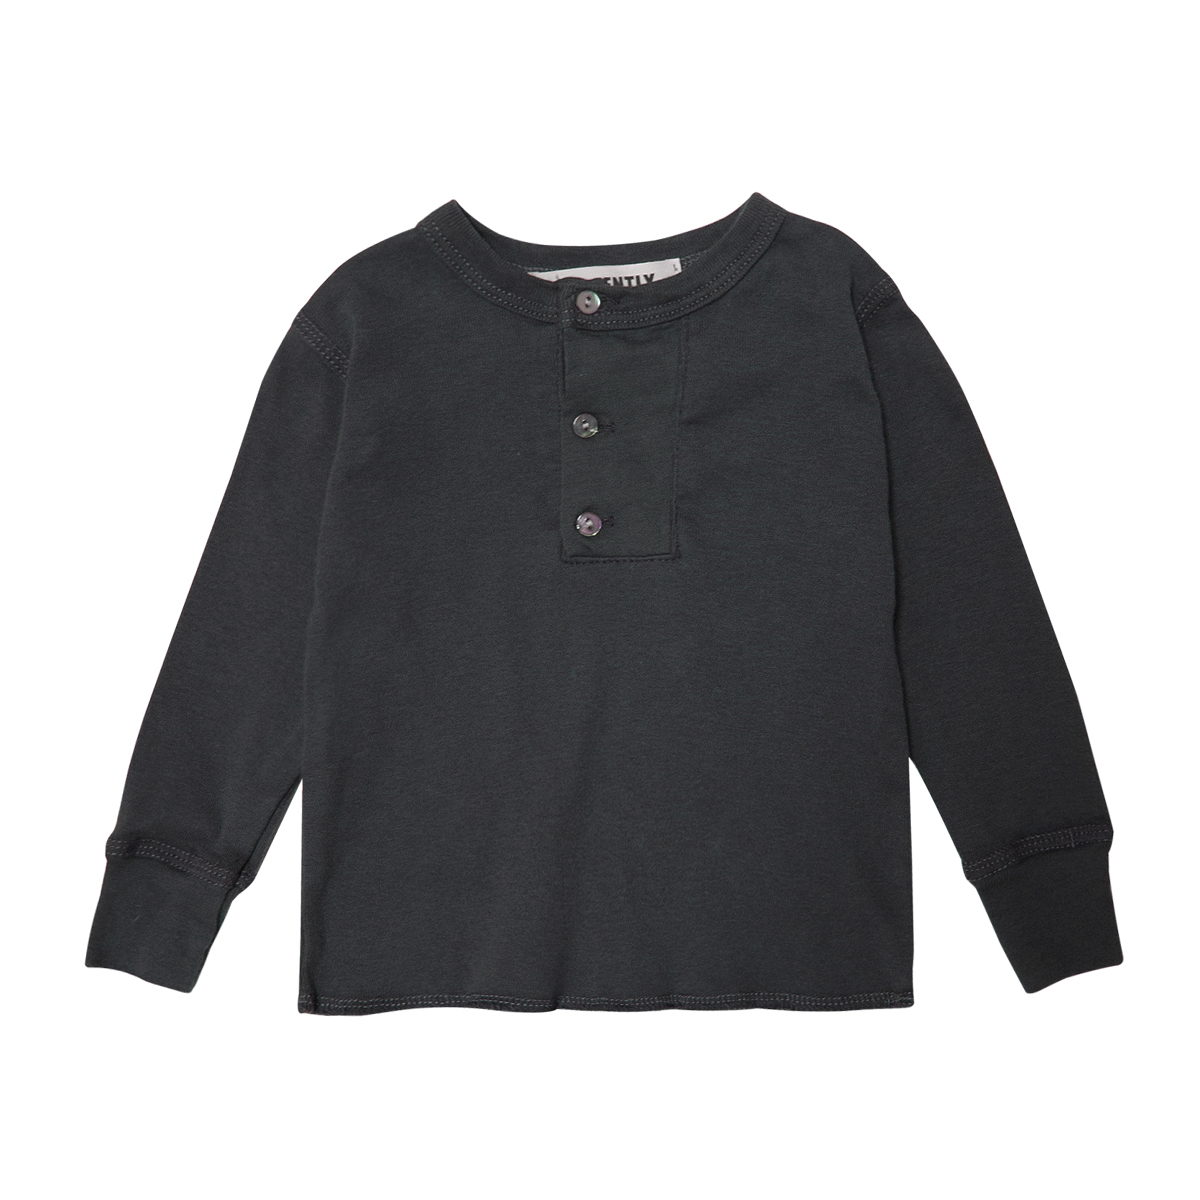 Go Gently Nation Henley Shirt in Charcoal